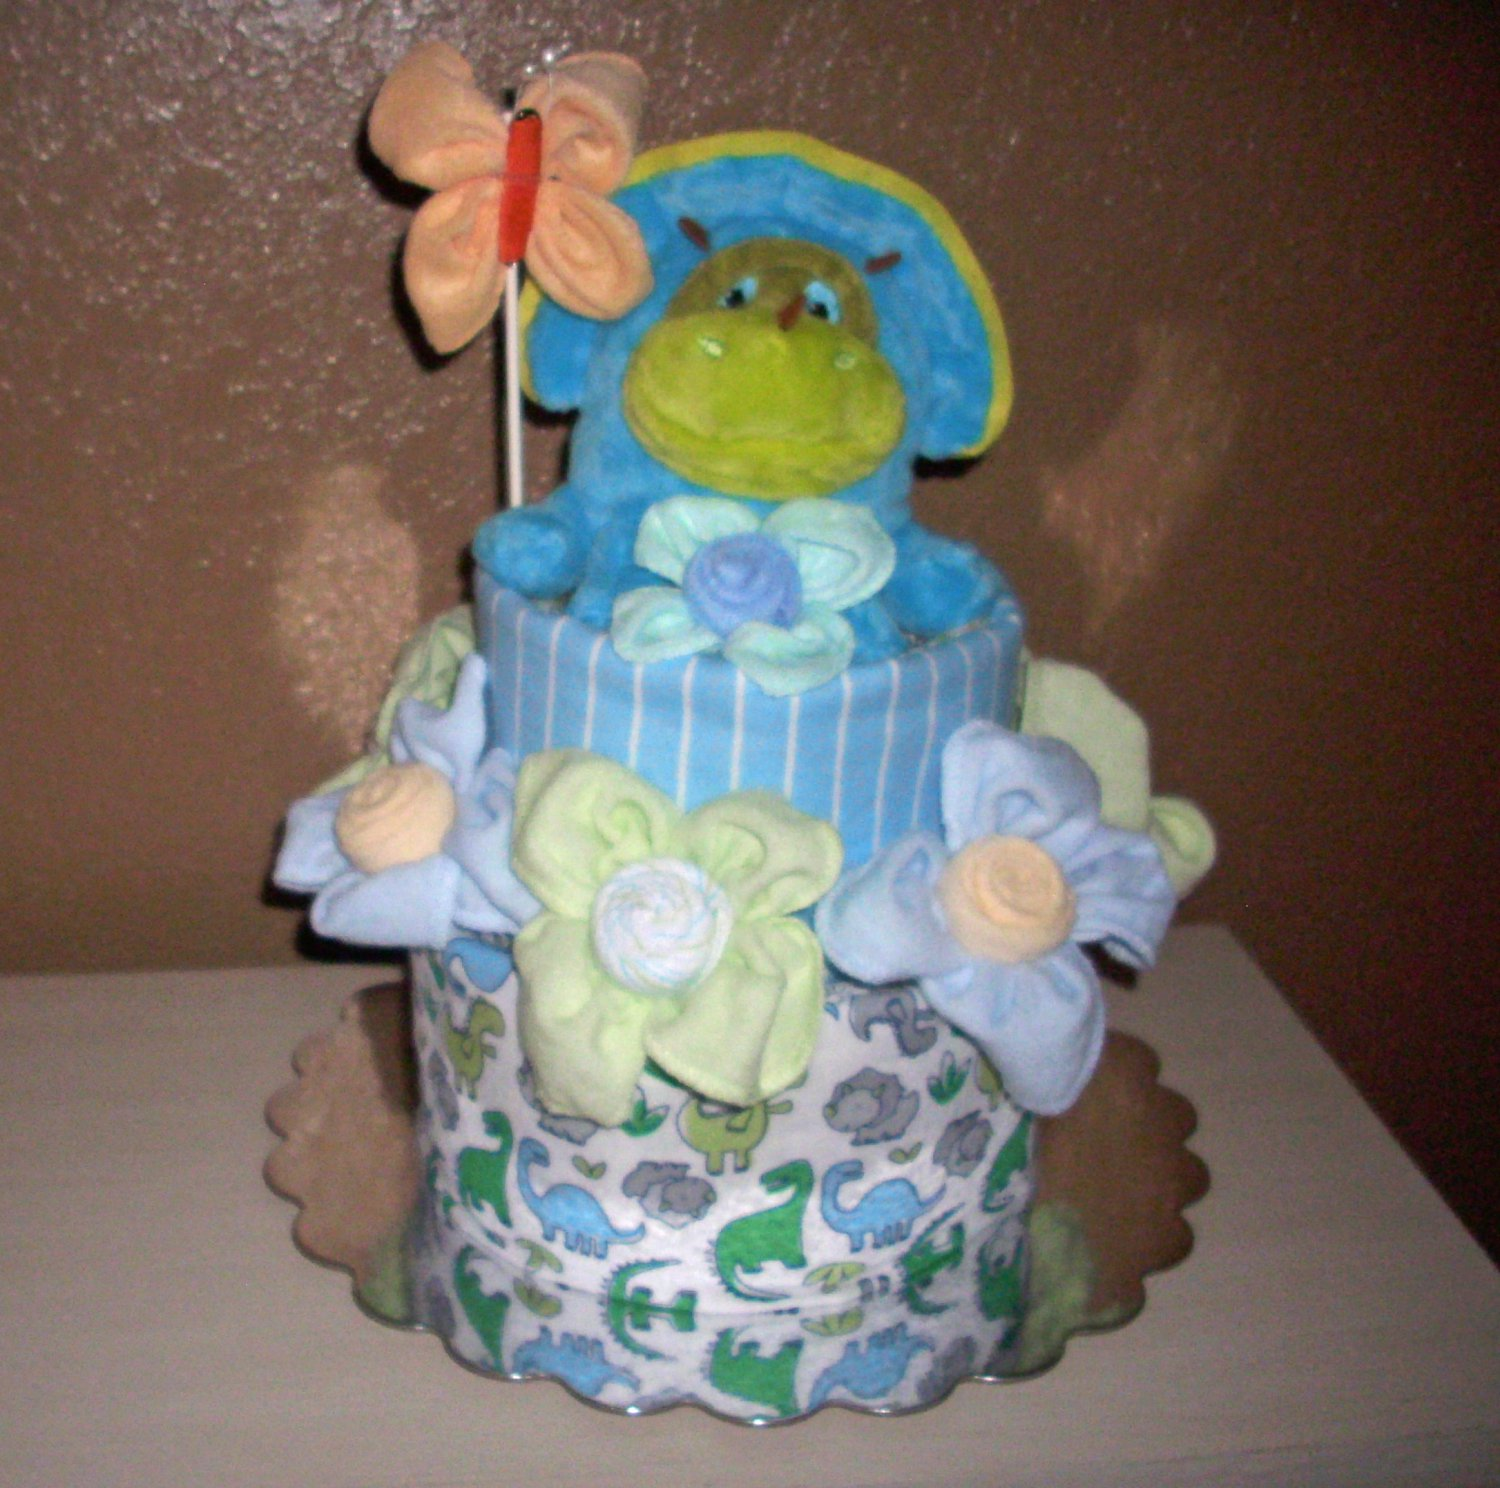 Dinosaur Diaper Cake, Baby Boy 2 layer cake, Stuffed with goodies